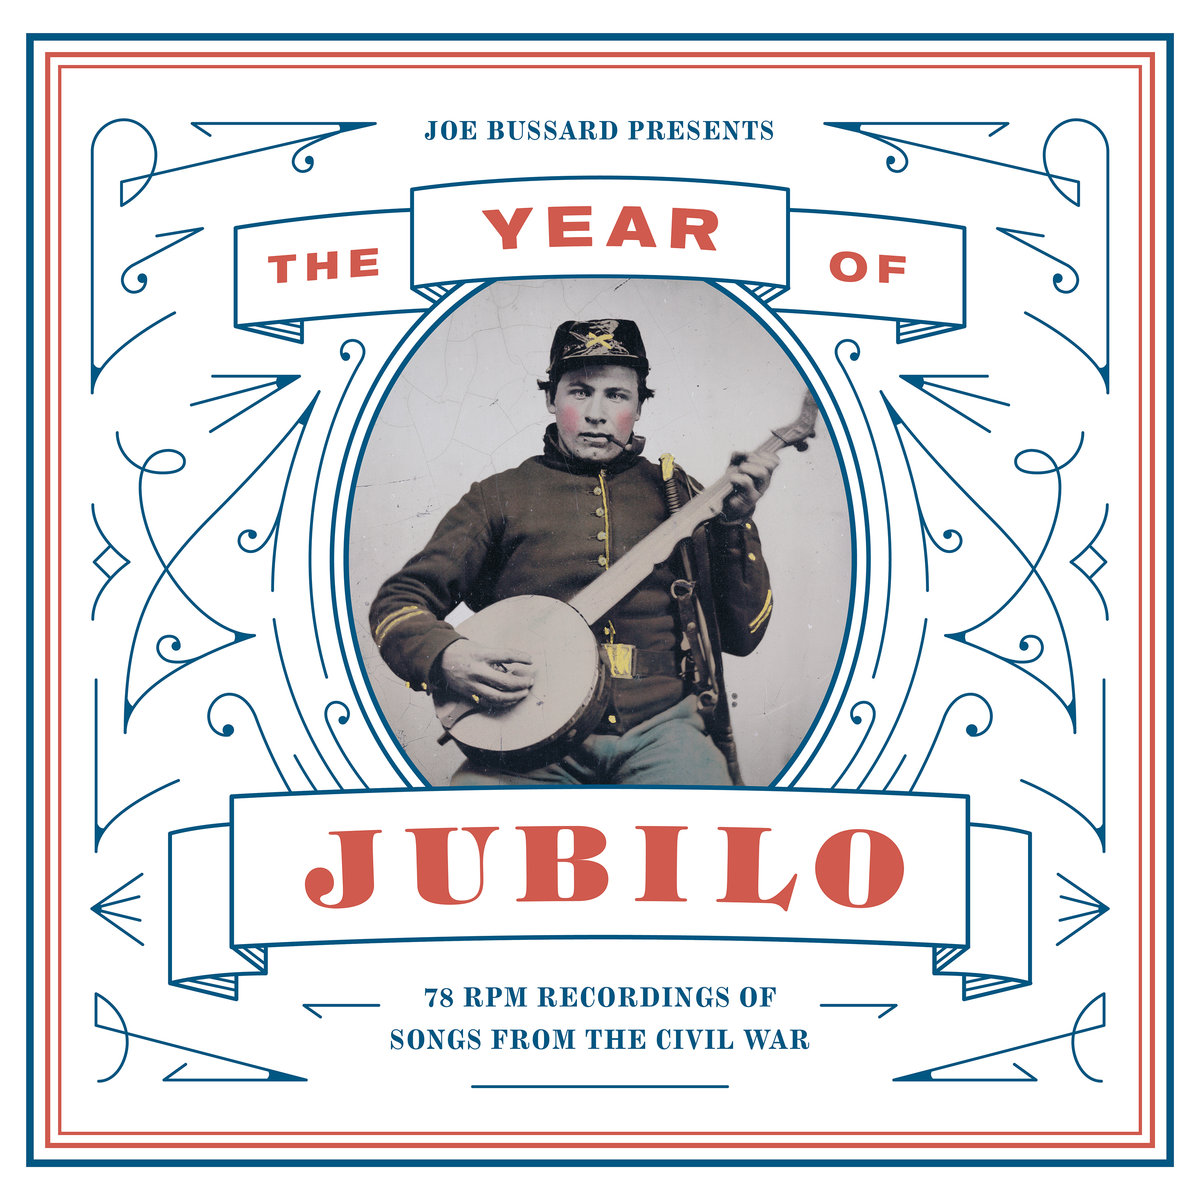 Joe Bussard Presents: The Year of Jubilo - 78 RPM Recordings of Songs from the Civil War  Release Date: October 16, 2015 Label: Dust-to-Digital  SERVICE: Restoration, Mastering SOURCE MATERIAL: 78 rpm records NUMBER OF DISCS: 1 GENRE: Roots FORMAT: CD